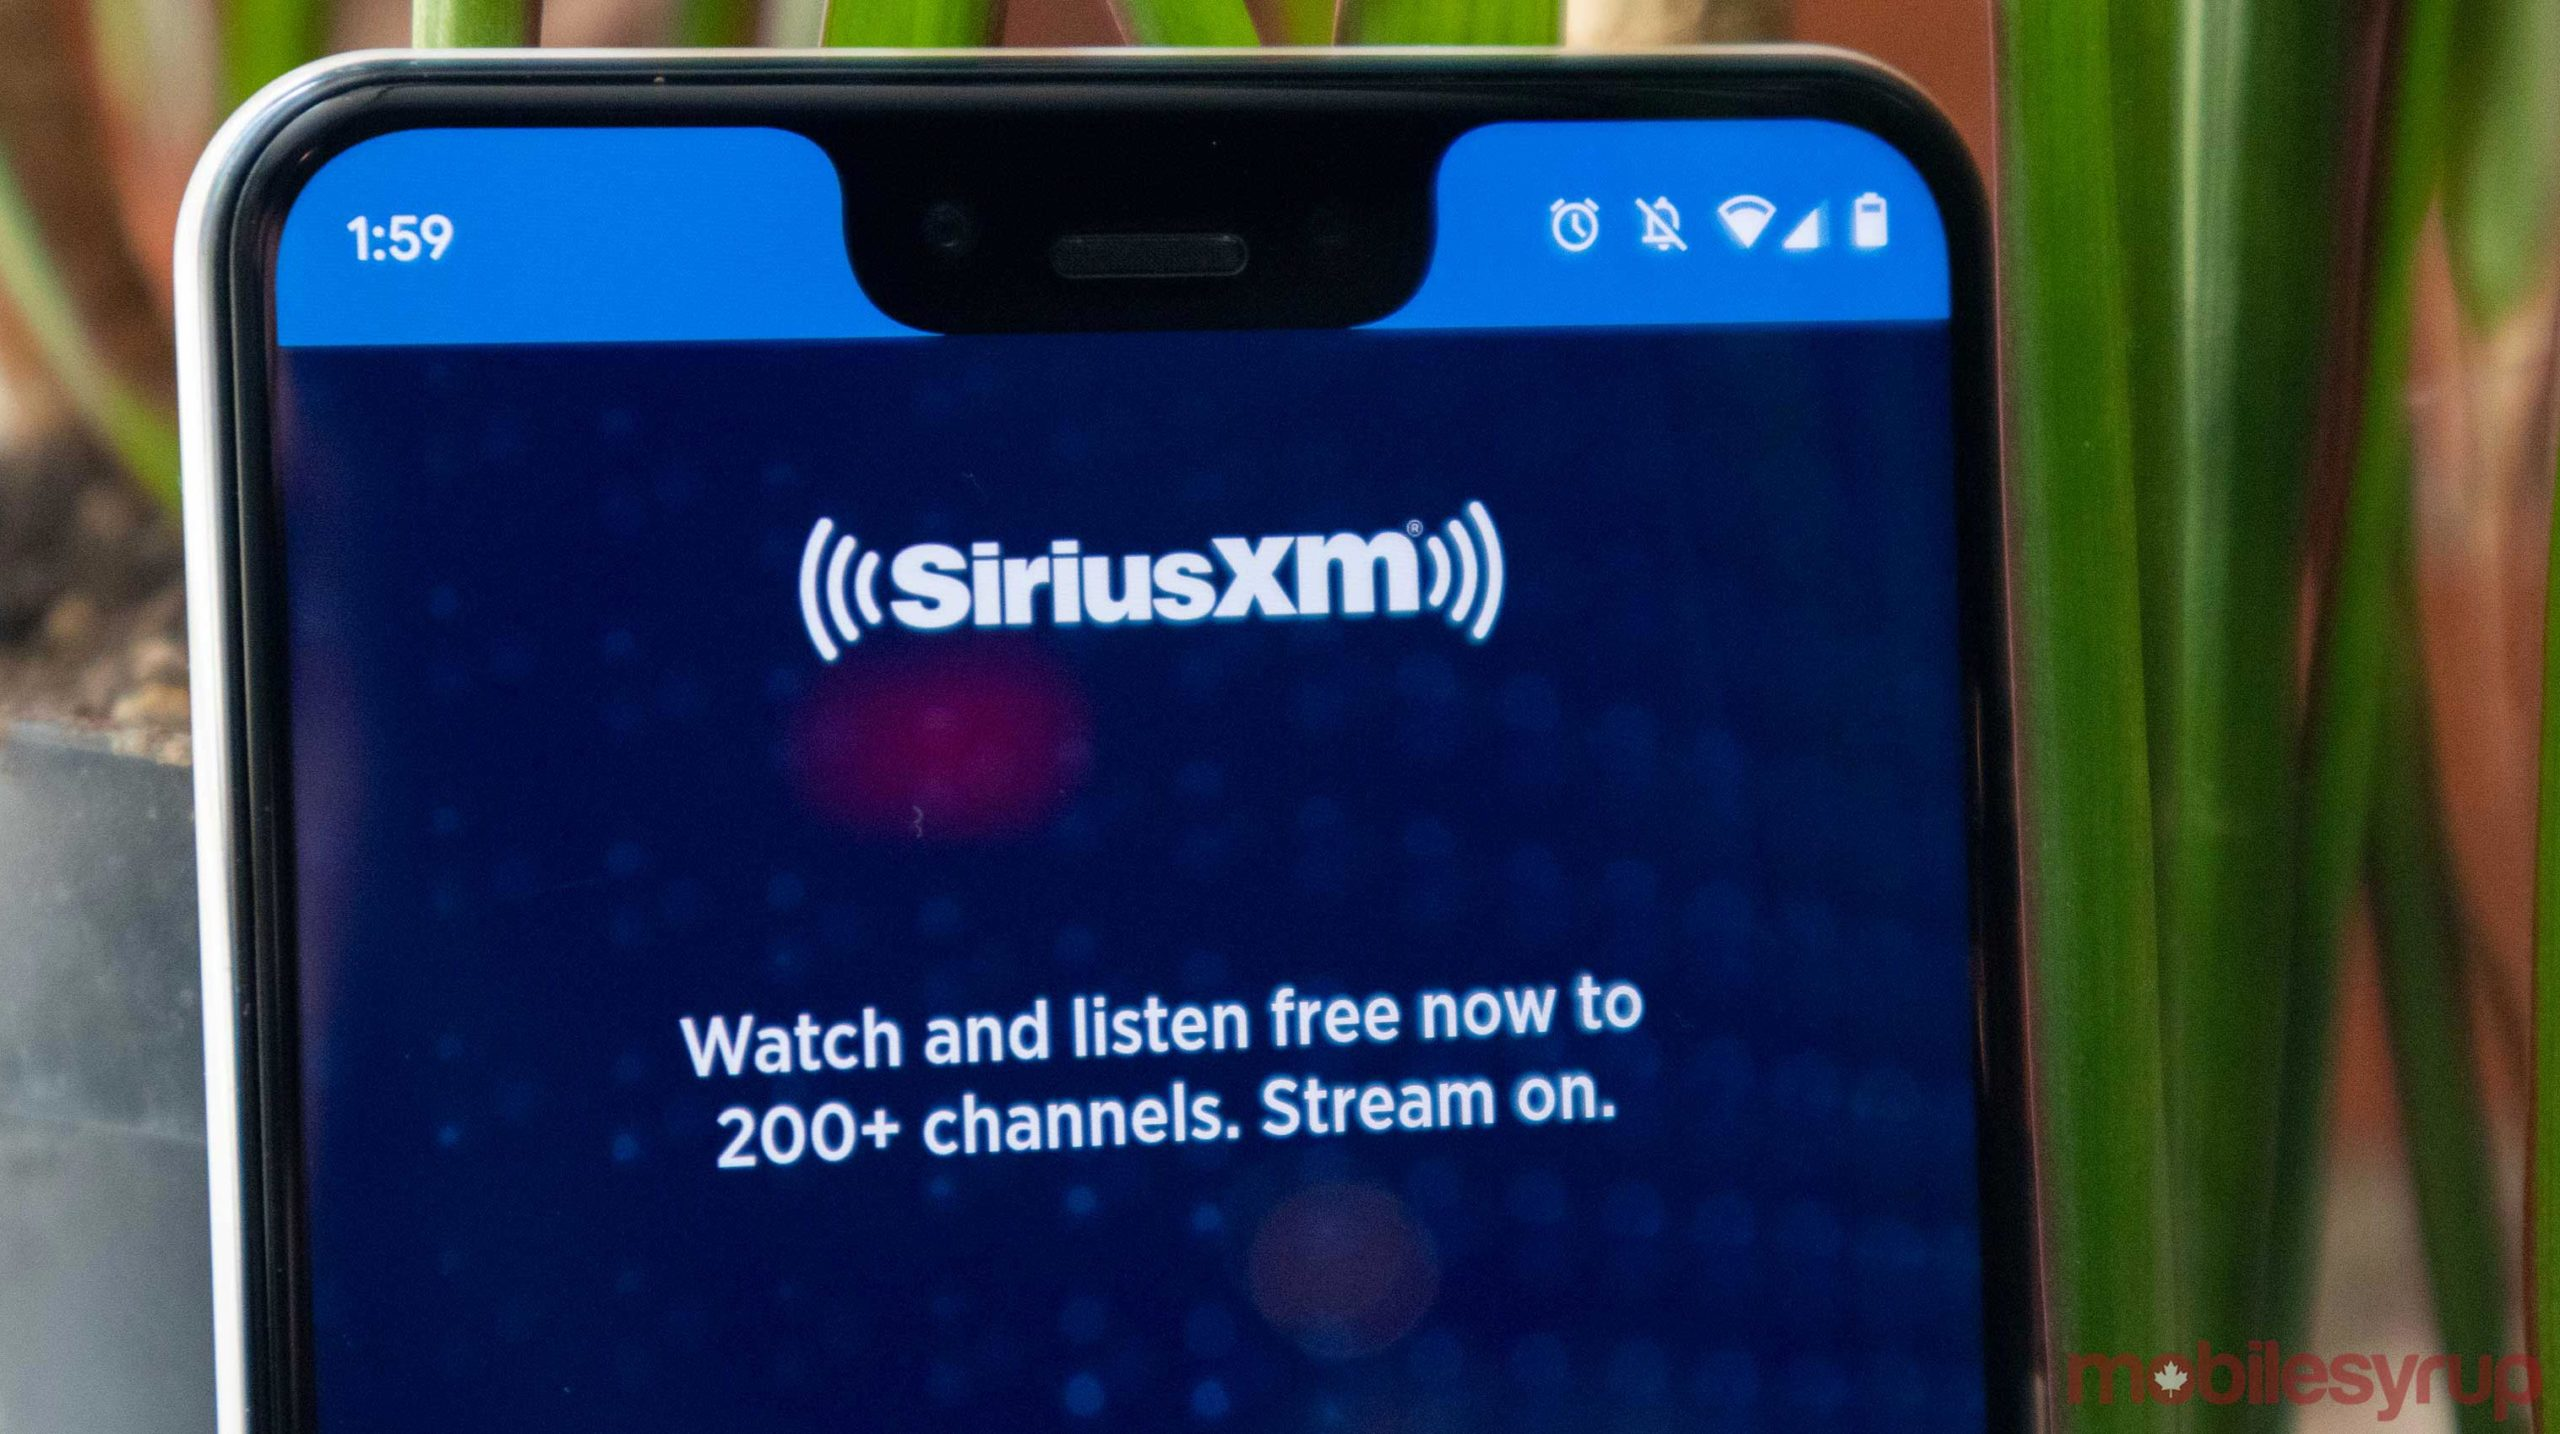 Streaming Content Is Free Until May 15